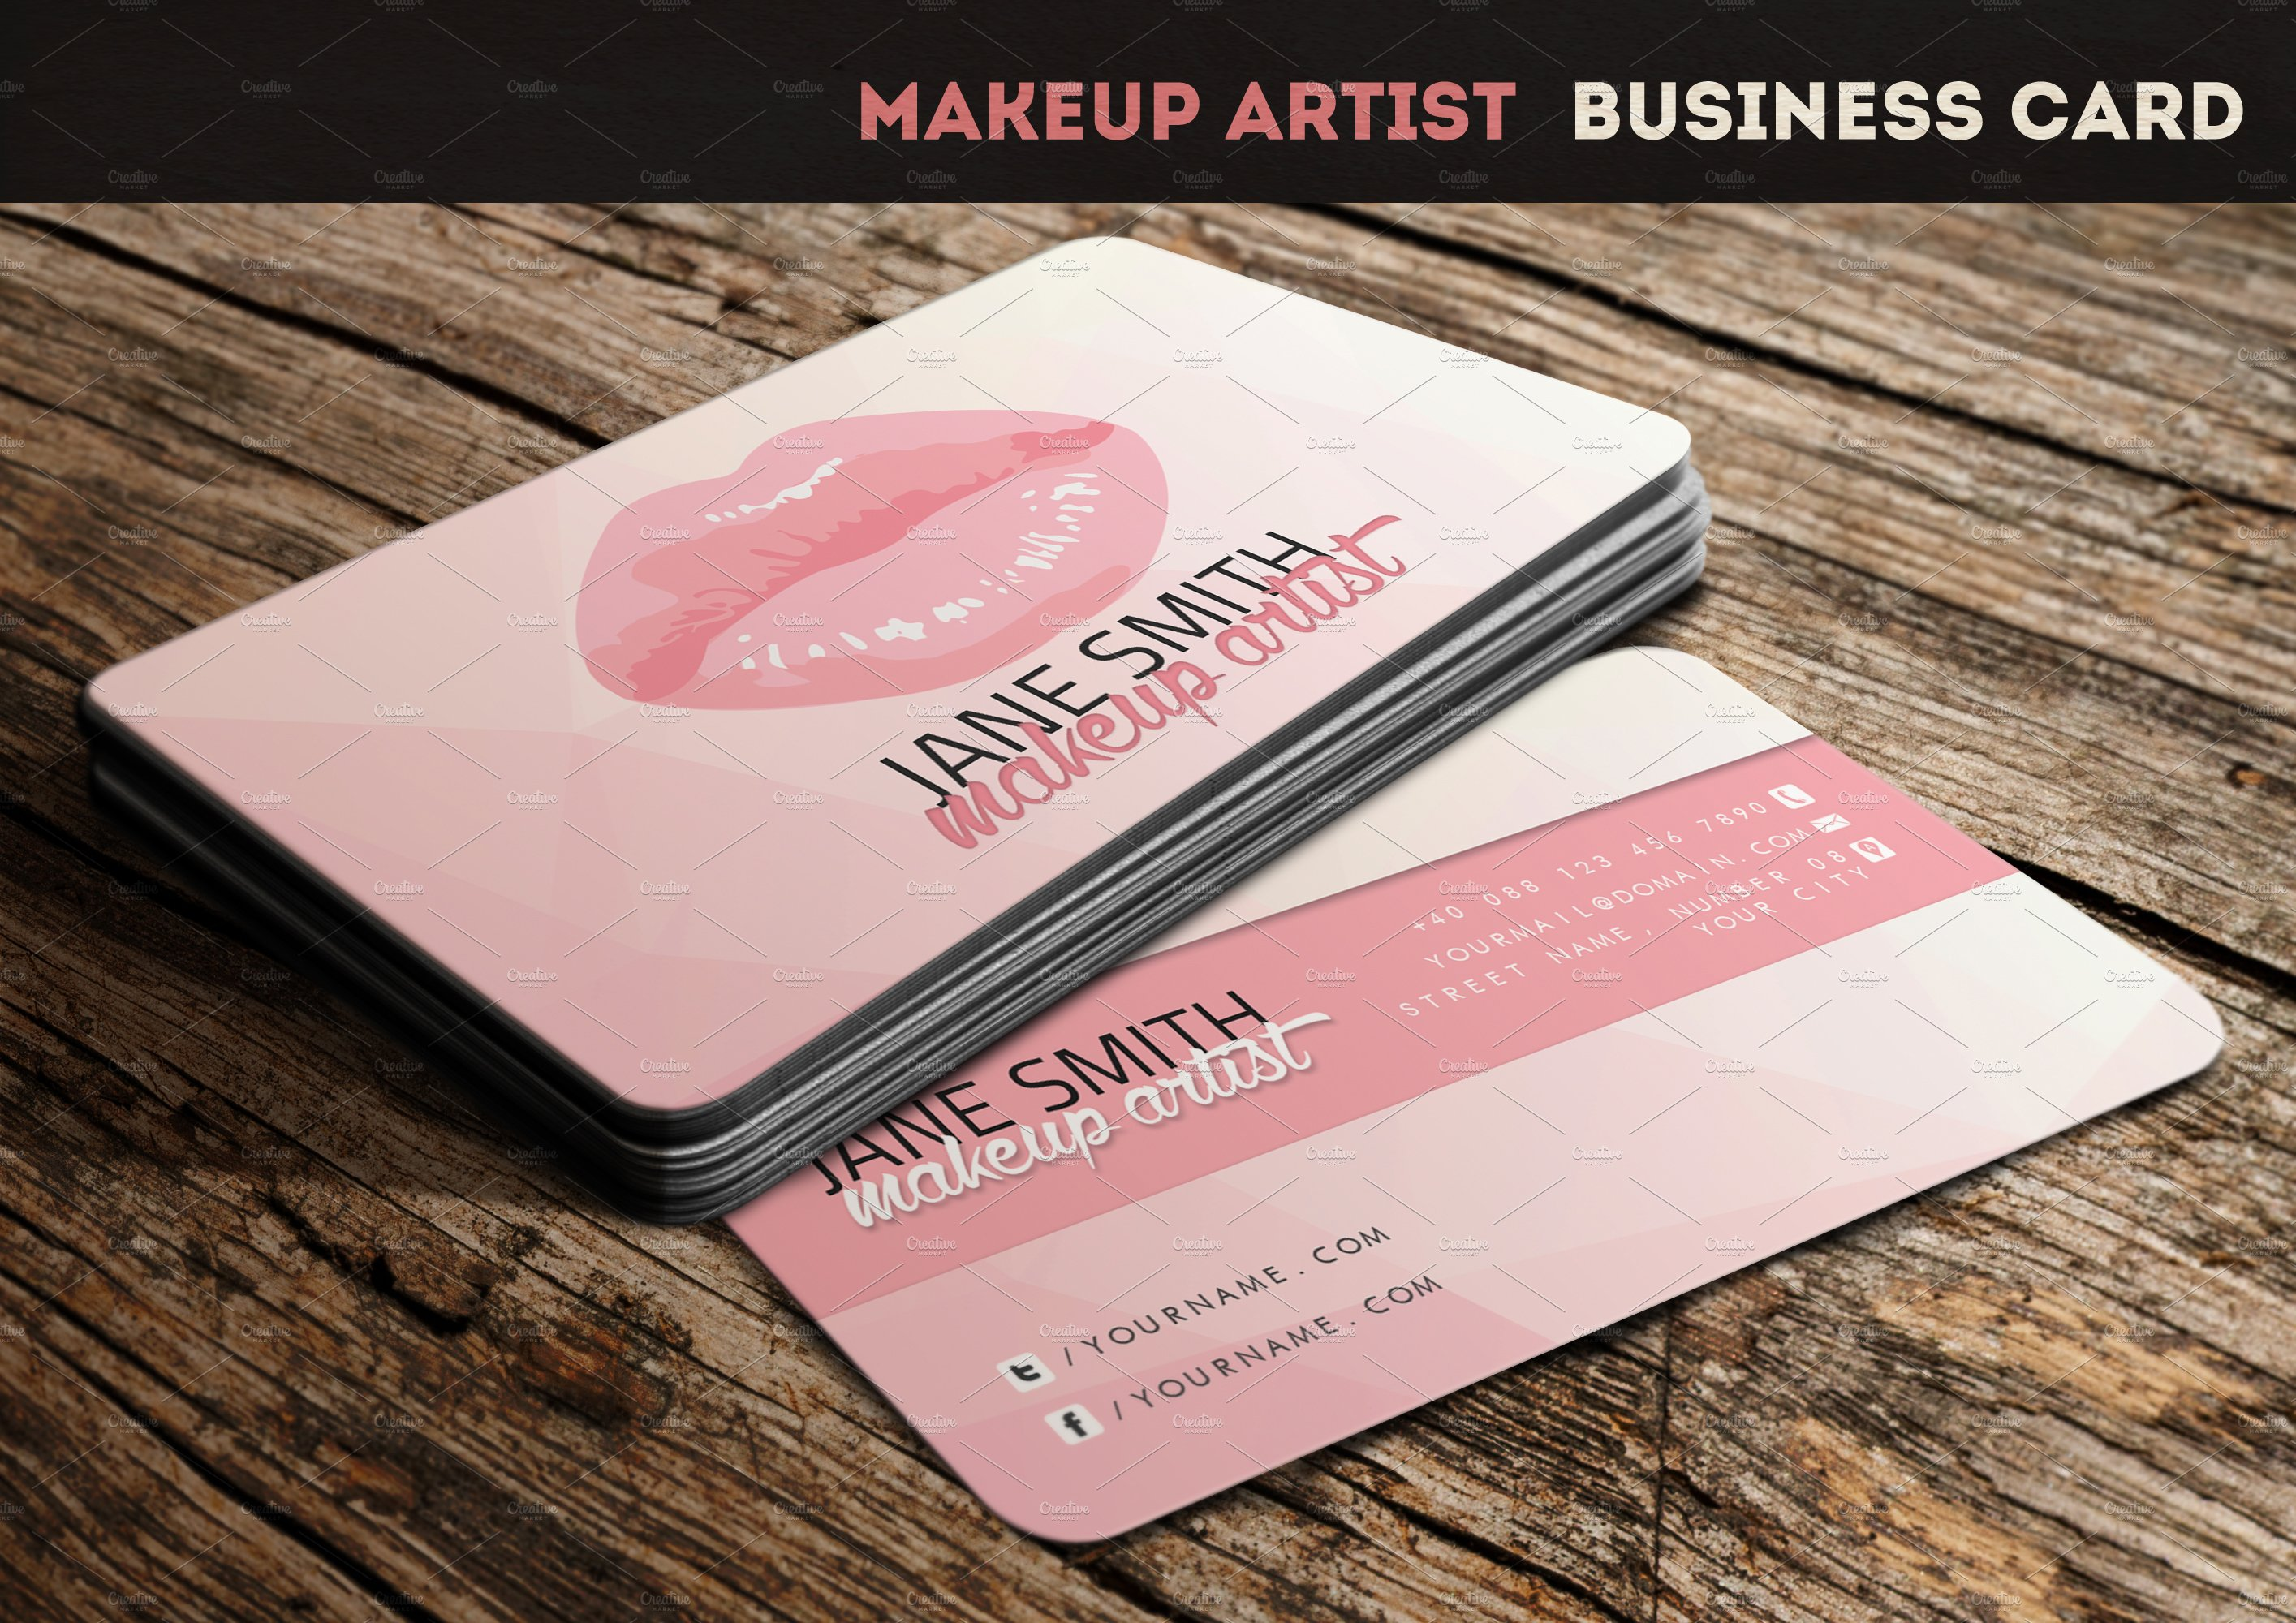 Makeup artist business card business card templates creative market accmission